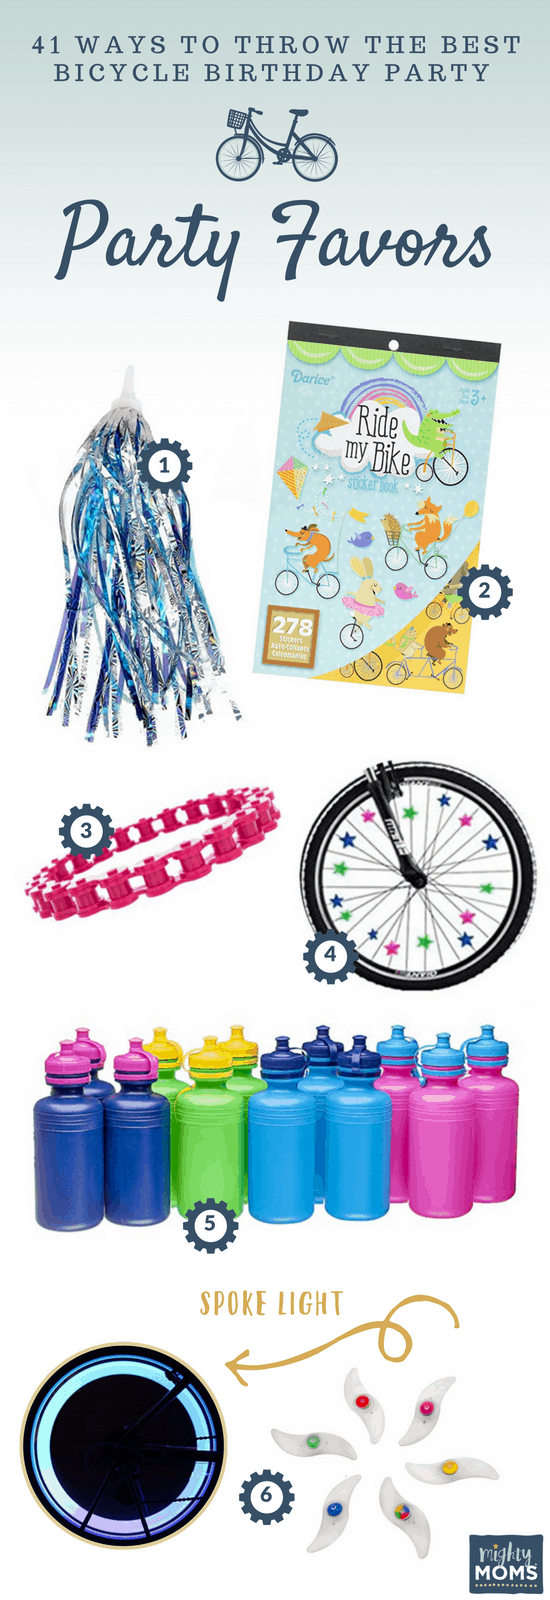 Bicycle Birthday Party Favor Ideas - MightyMoms.club